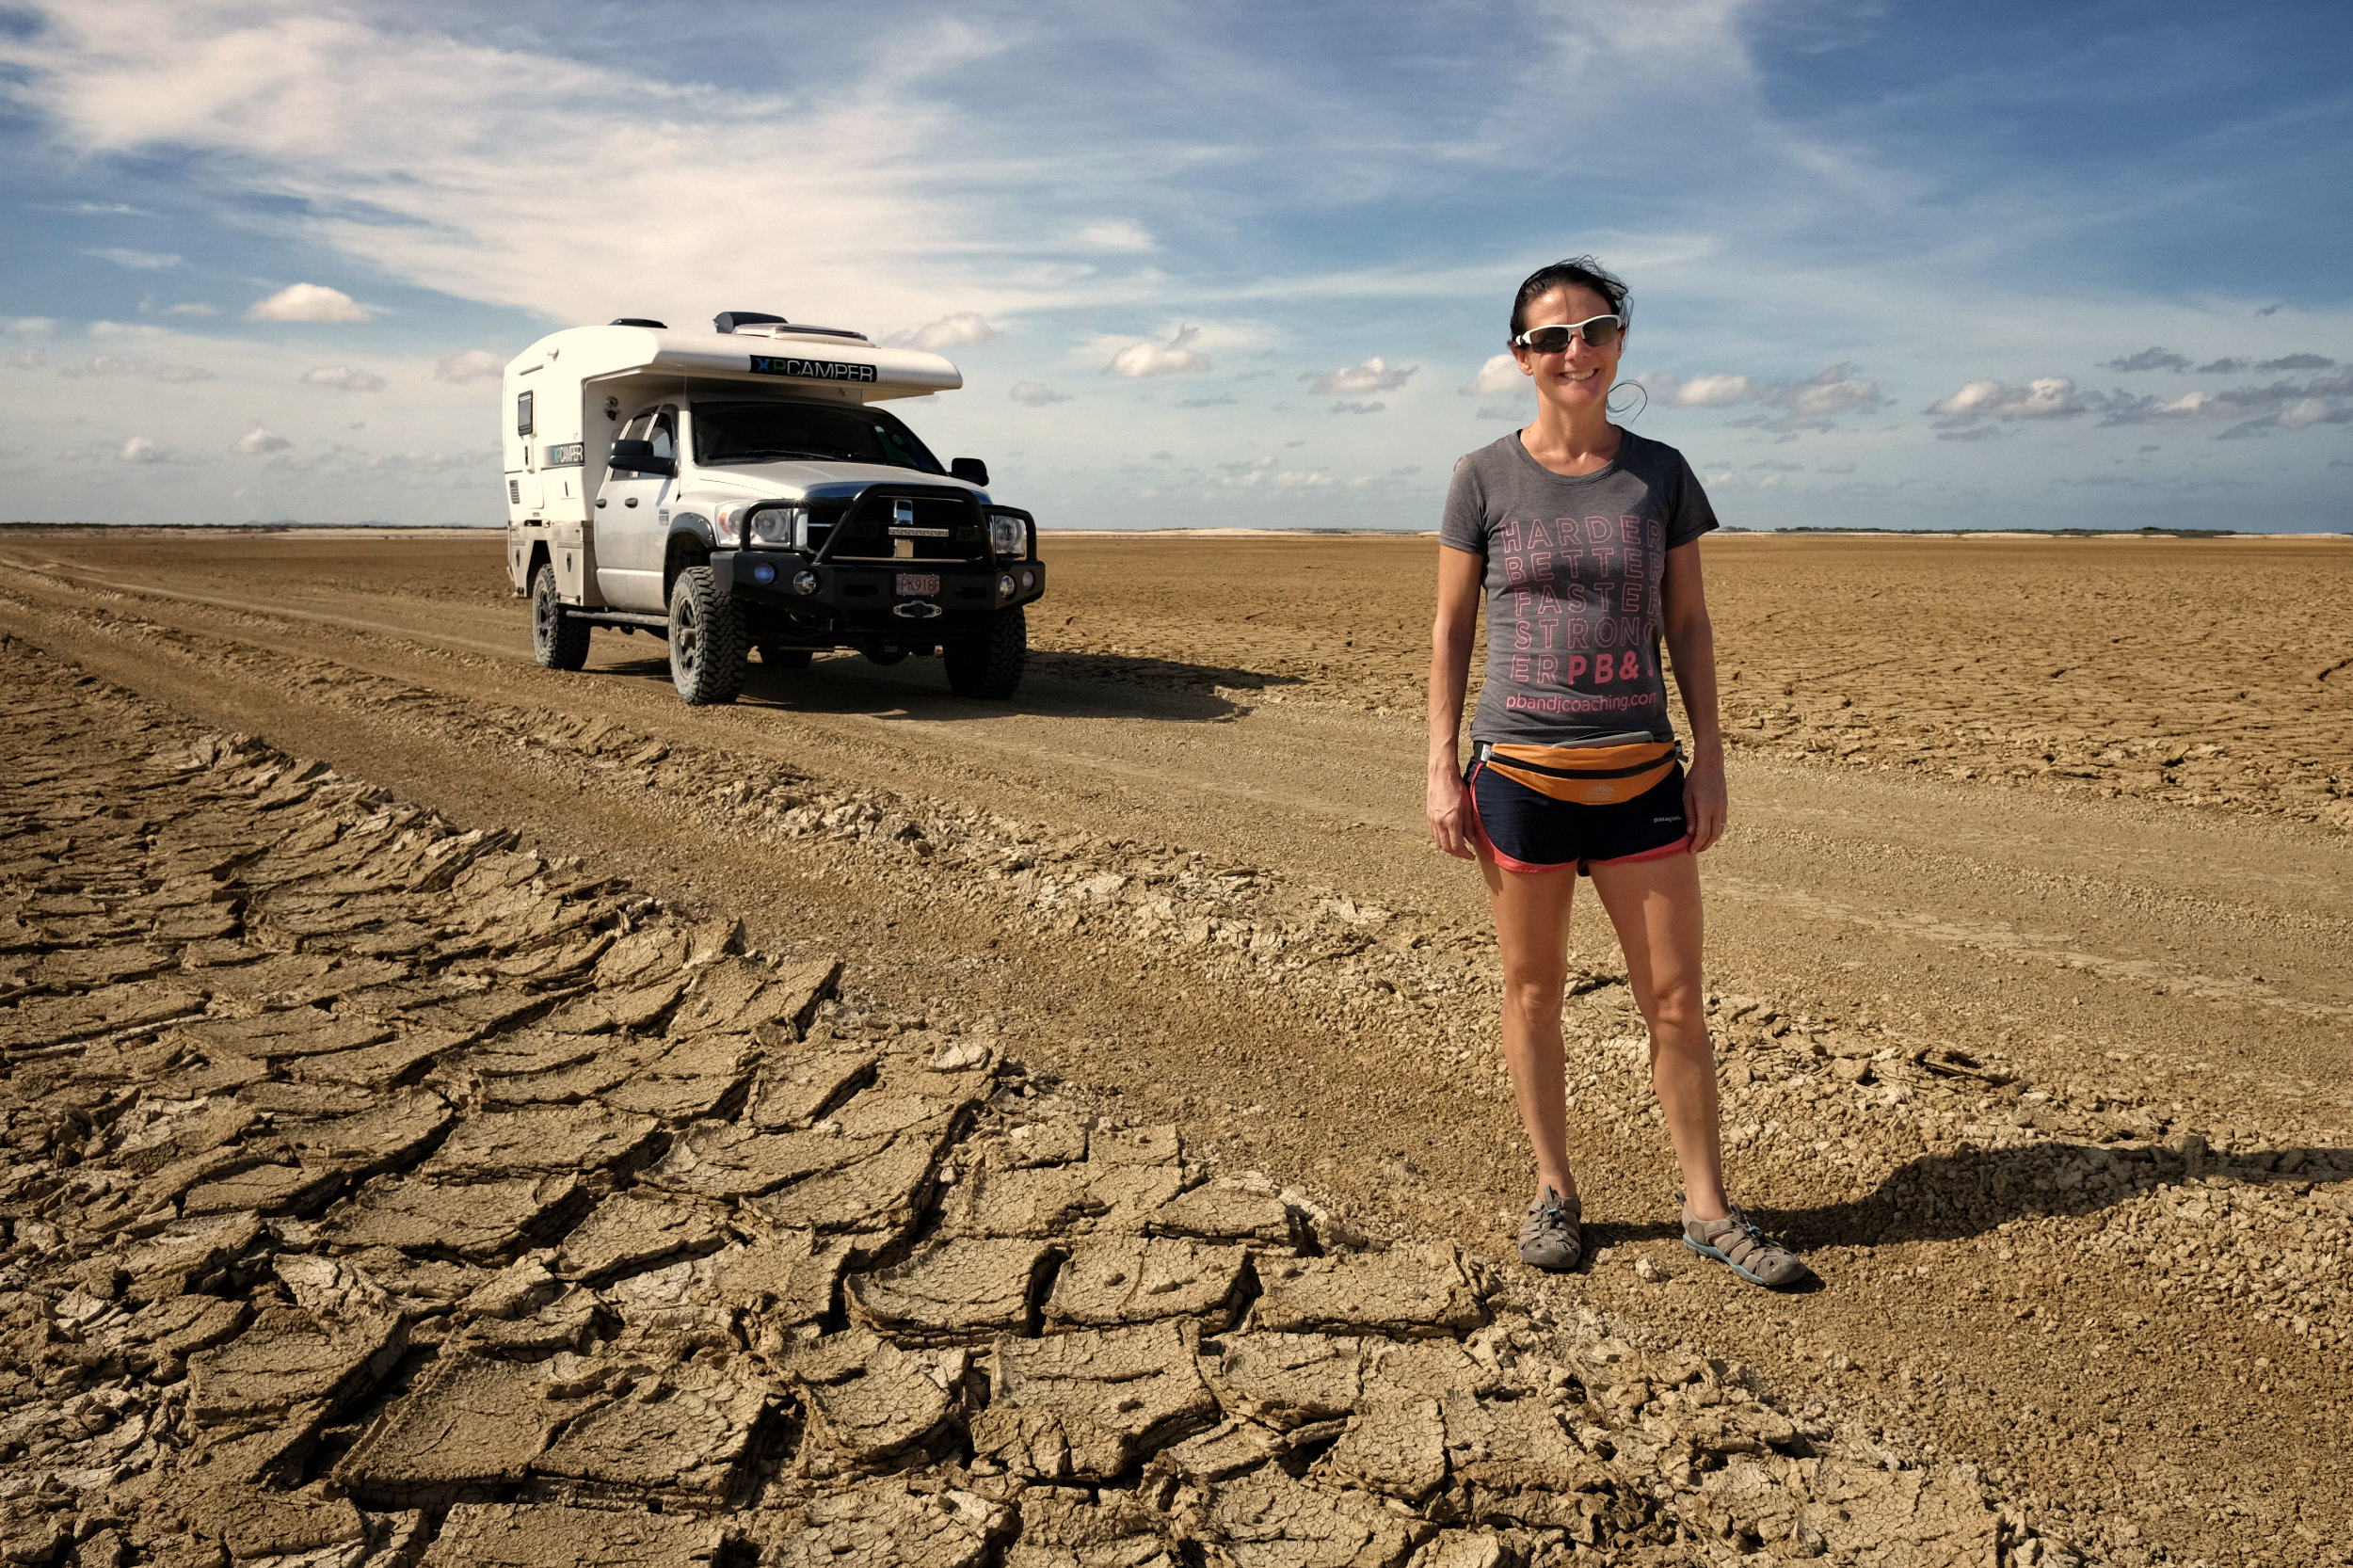 Clair, the camper and Cracked earth in La Guijara